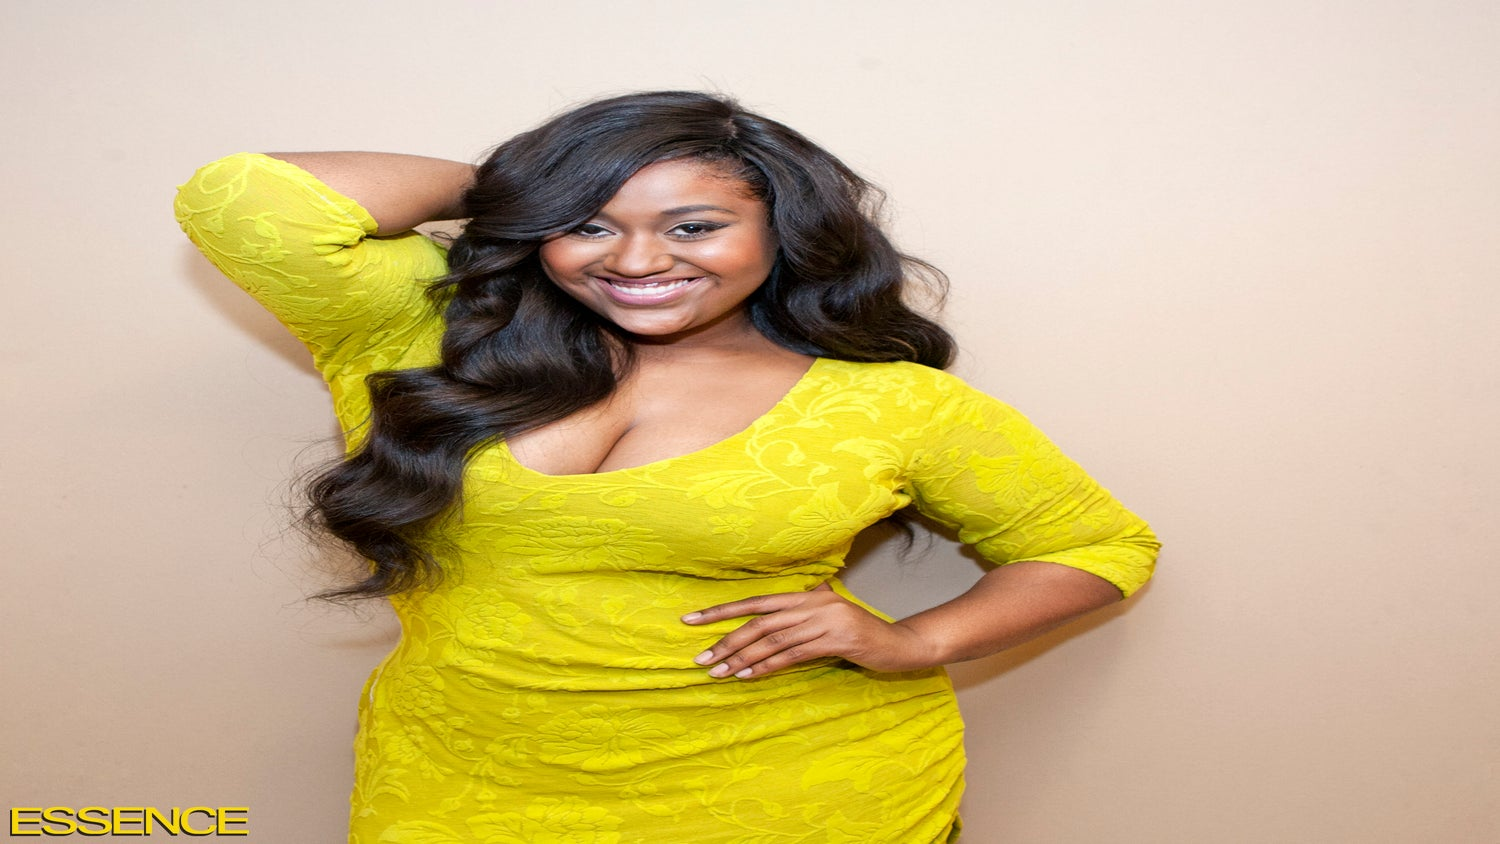 EXCLUSIVE: Jazmine Sullivan Reveals Why She Took a Break from Making Music